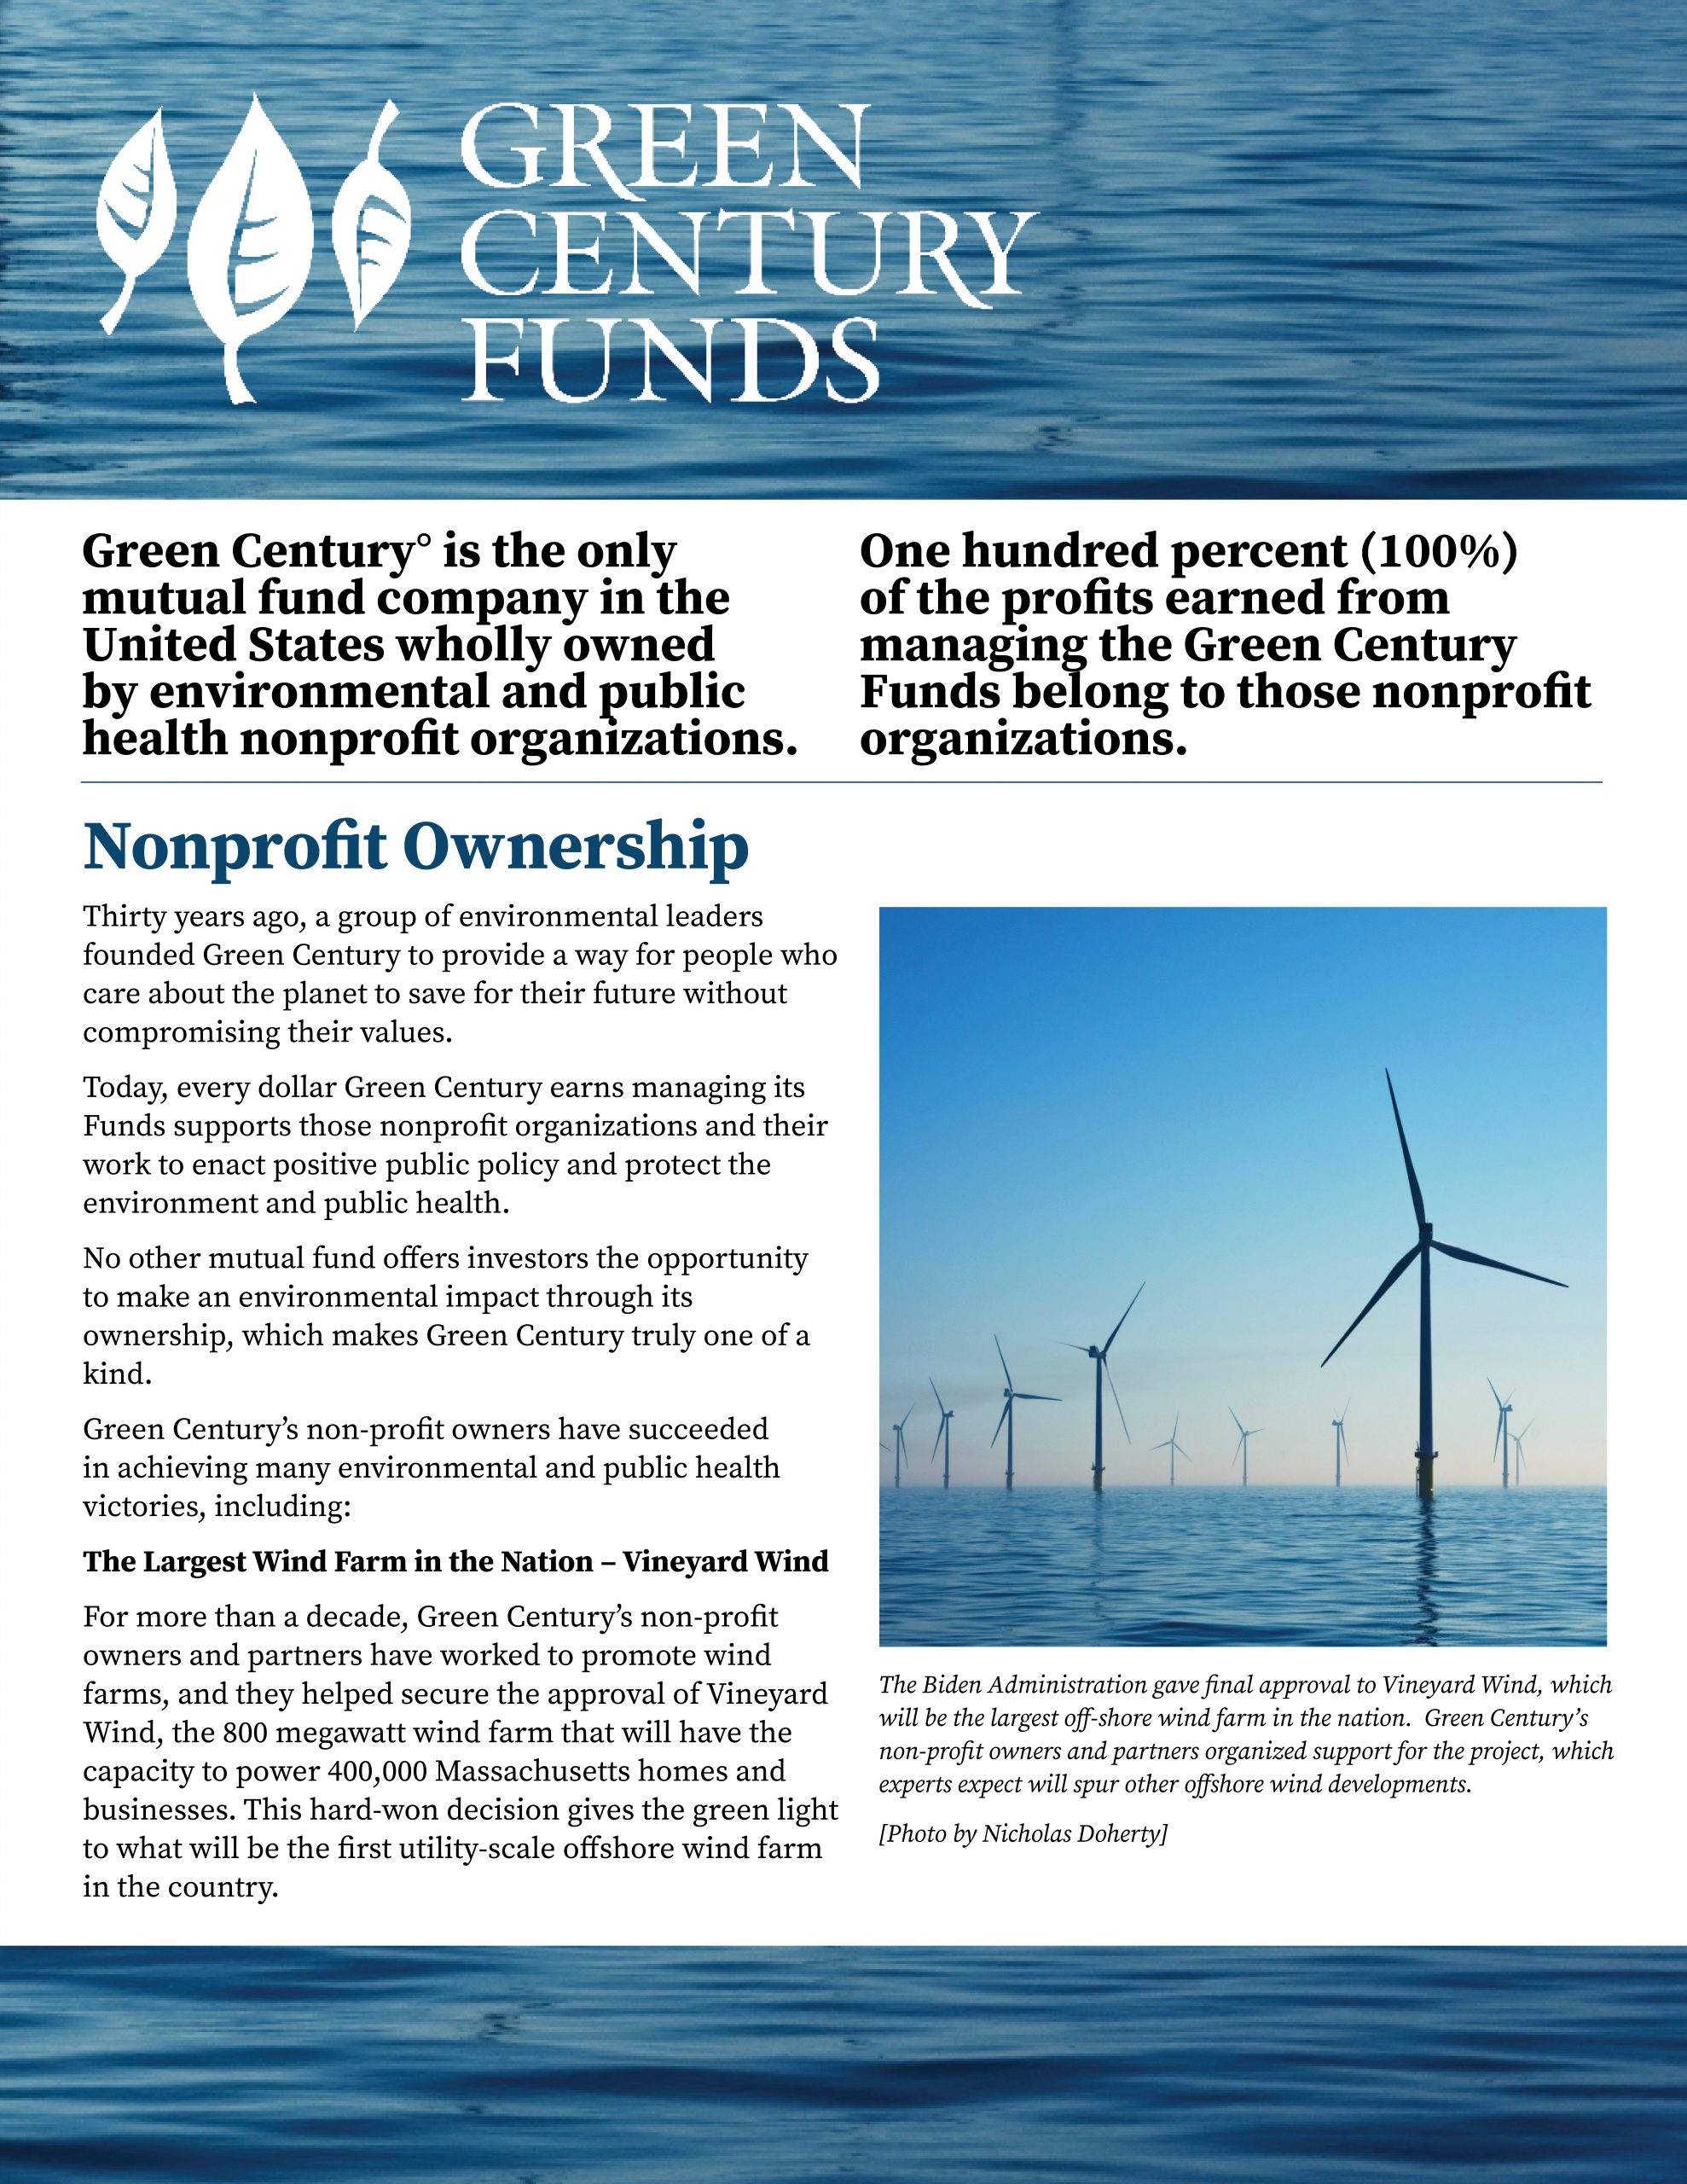 Ownership 2-pager 6.30.21 image